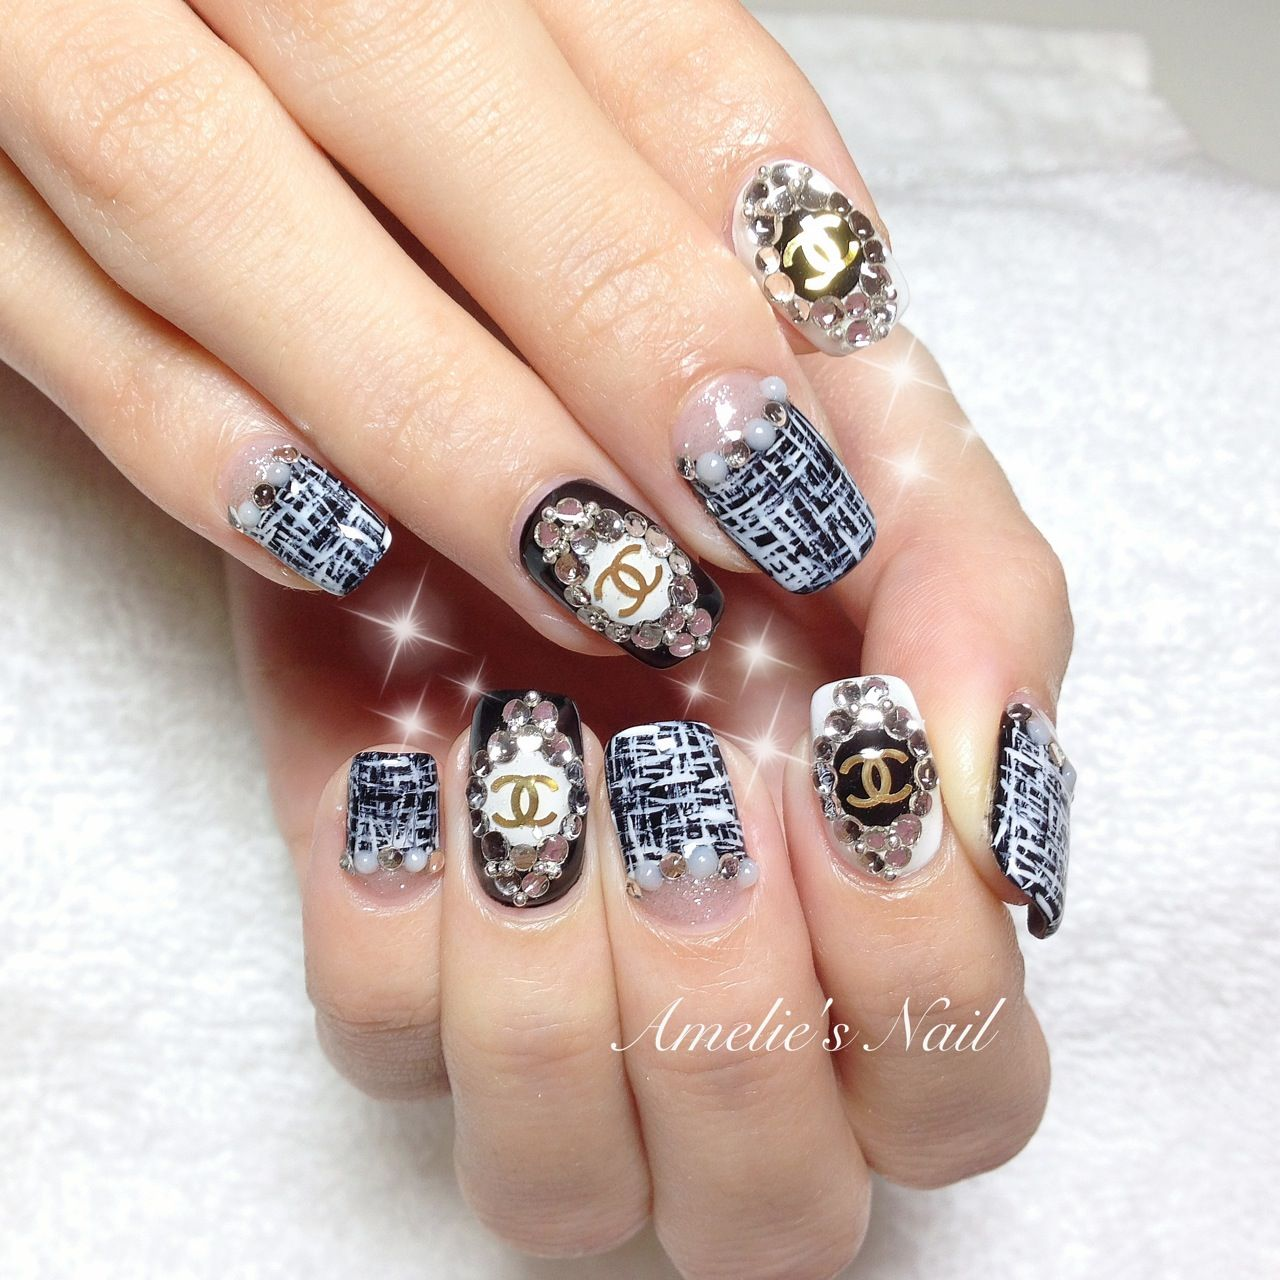 Chanel tweed monochrome nails nail art and easy manicure chanel nails prinsesfo Image collections